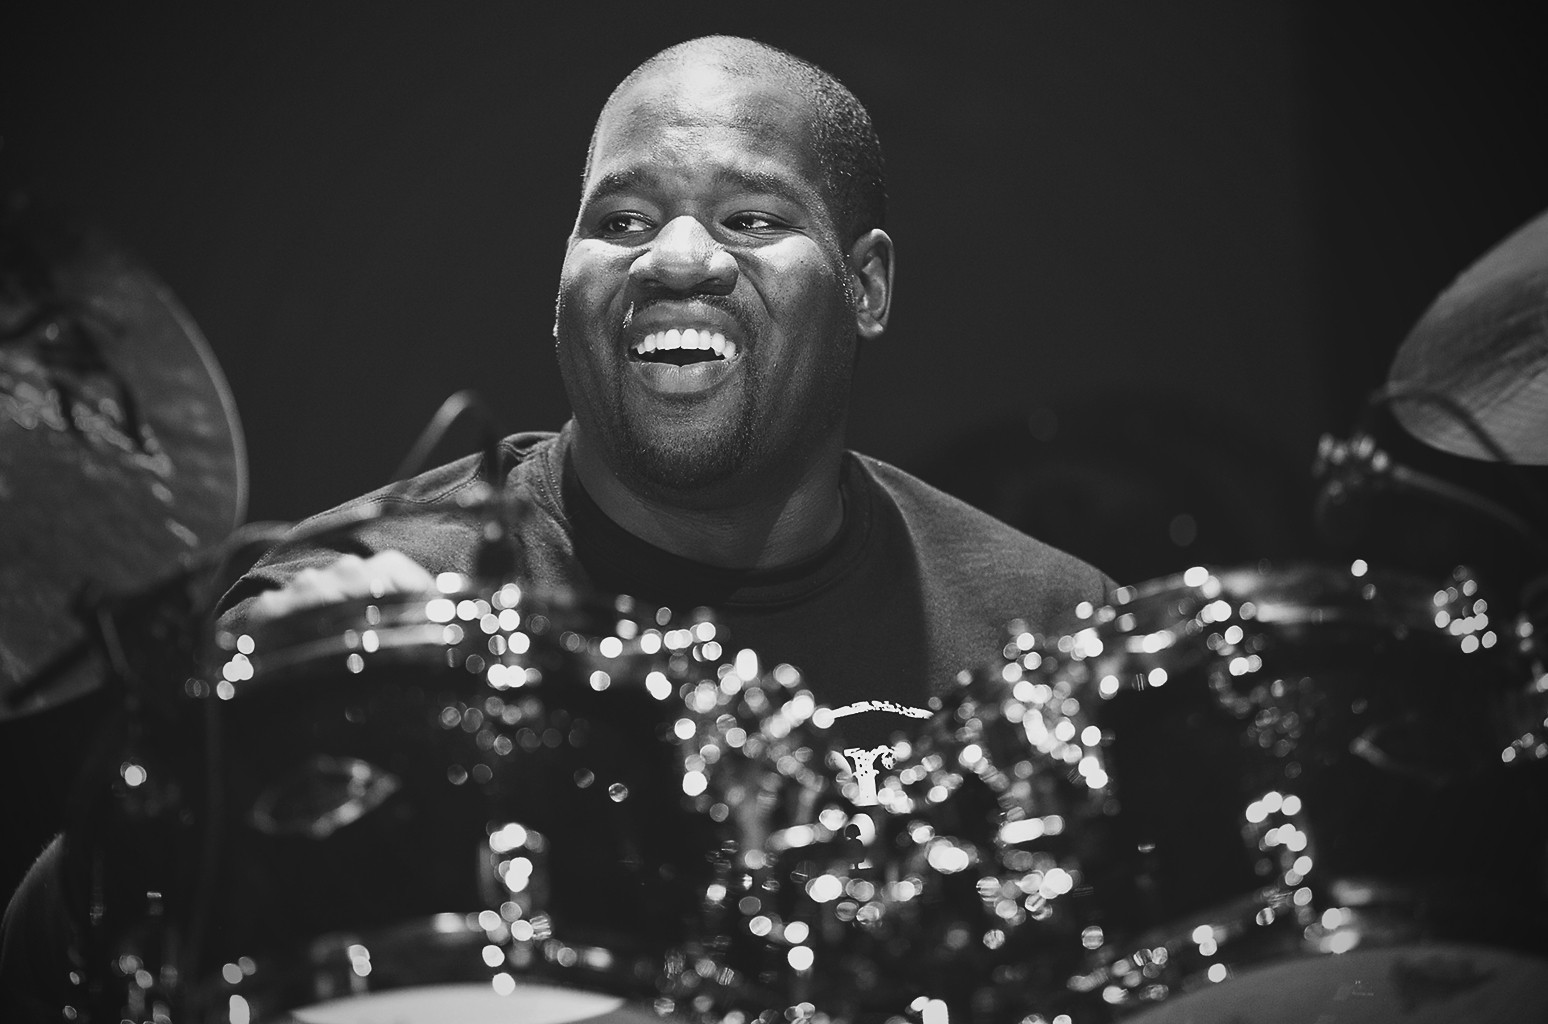 John Blackwell attends Guitar Center's Drum-Off Grand Finals event at Club Nokia on Jan. 19, 2013 in Los Angeles.